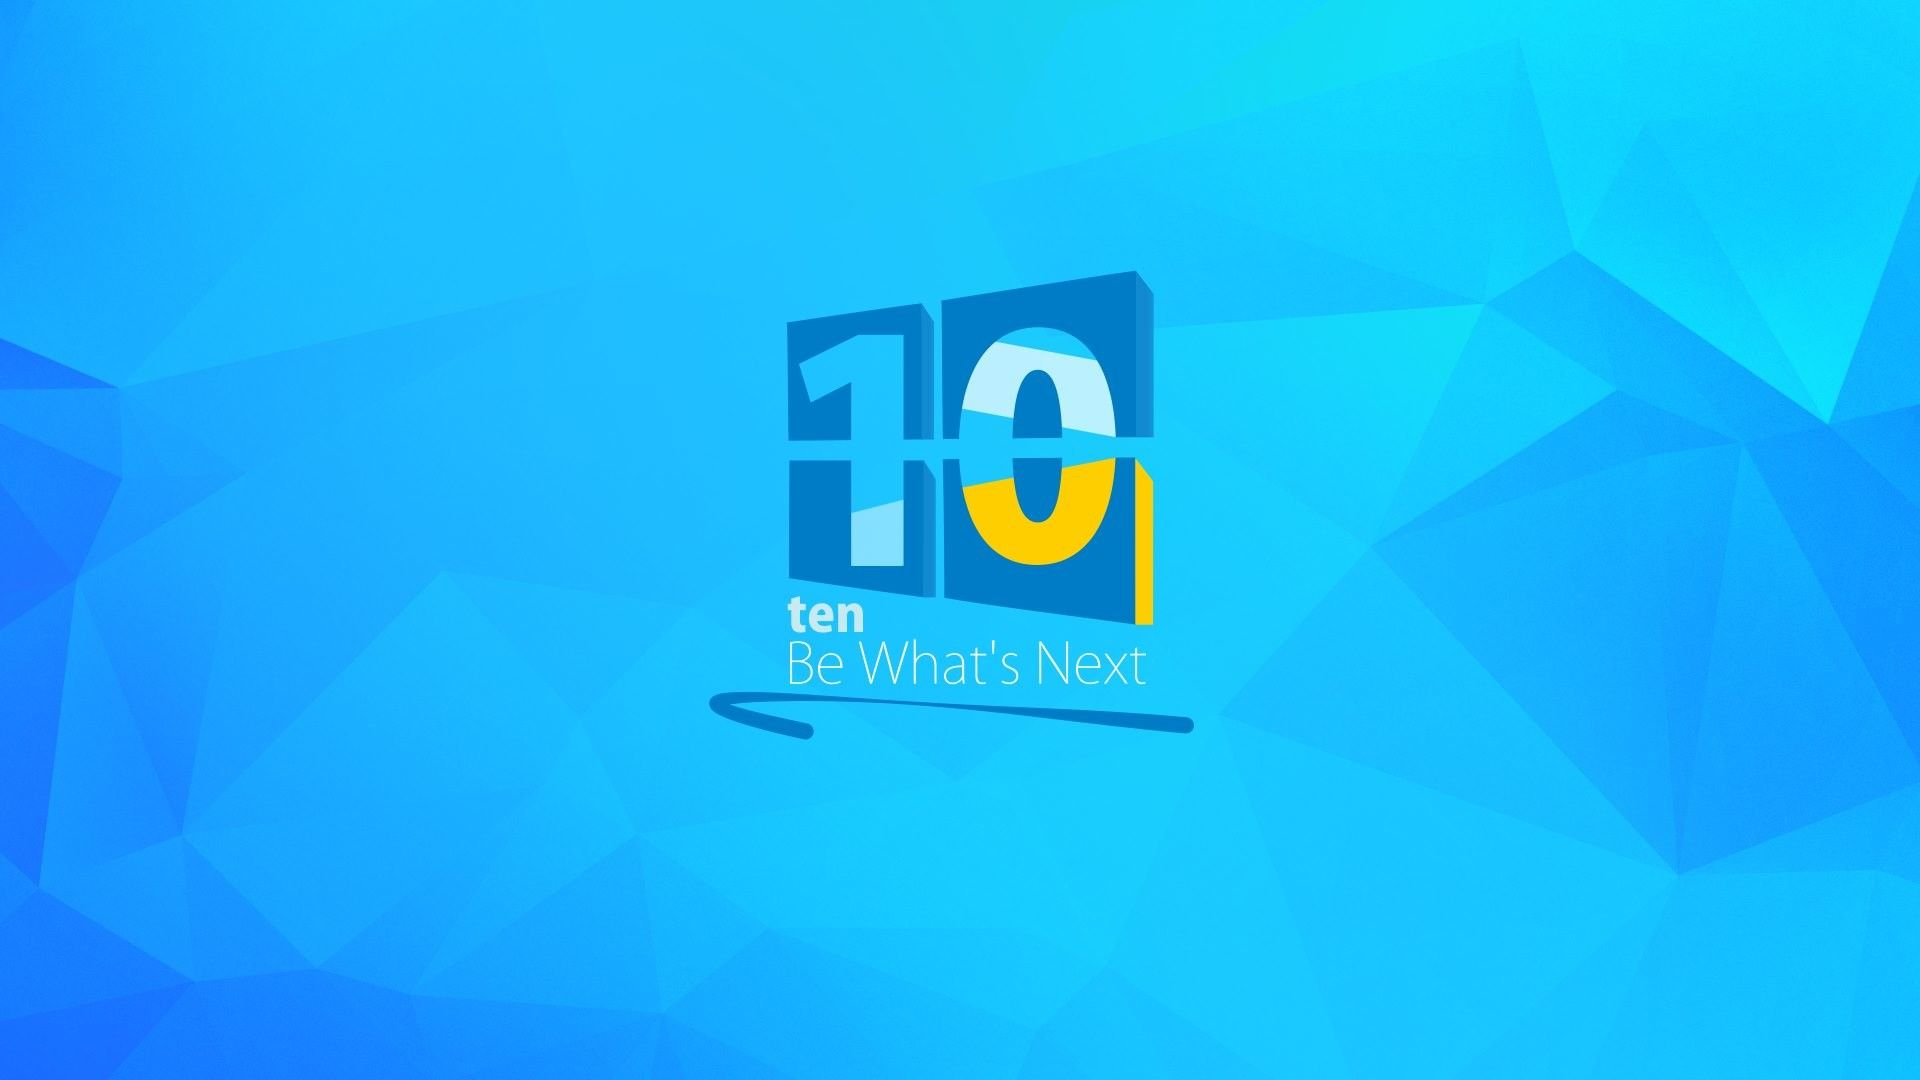 1920x1080 Be Next Be Windows 10 Hd Wallpapers 4k Wallpapers Hd Wallpaper Wallpaper 1920x1080 Windows 10